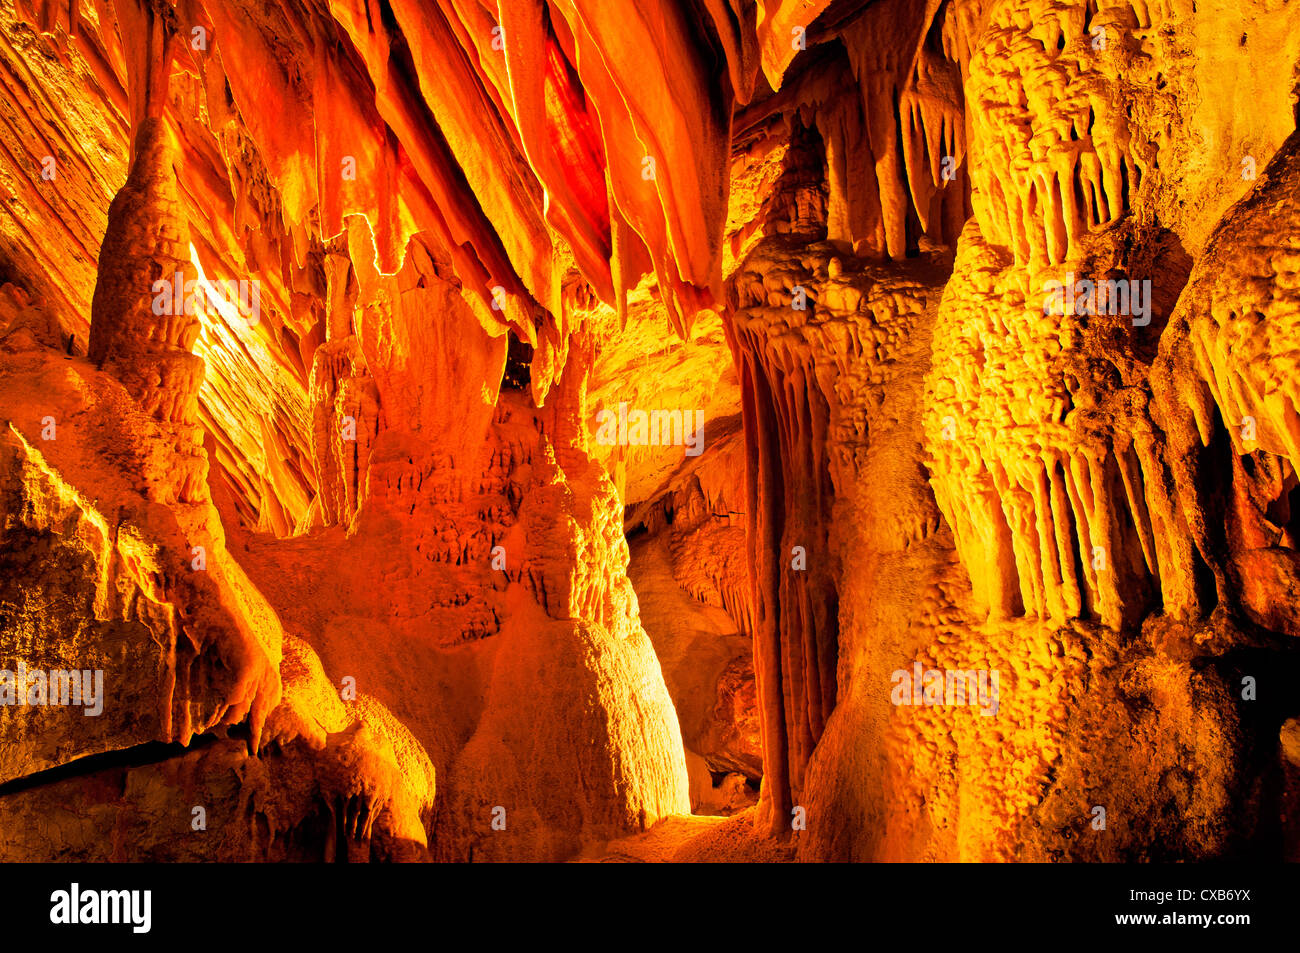 Stalactite formations of Lucas Cave, part of the Jenolan Caves system. - Stock Image